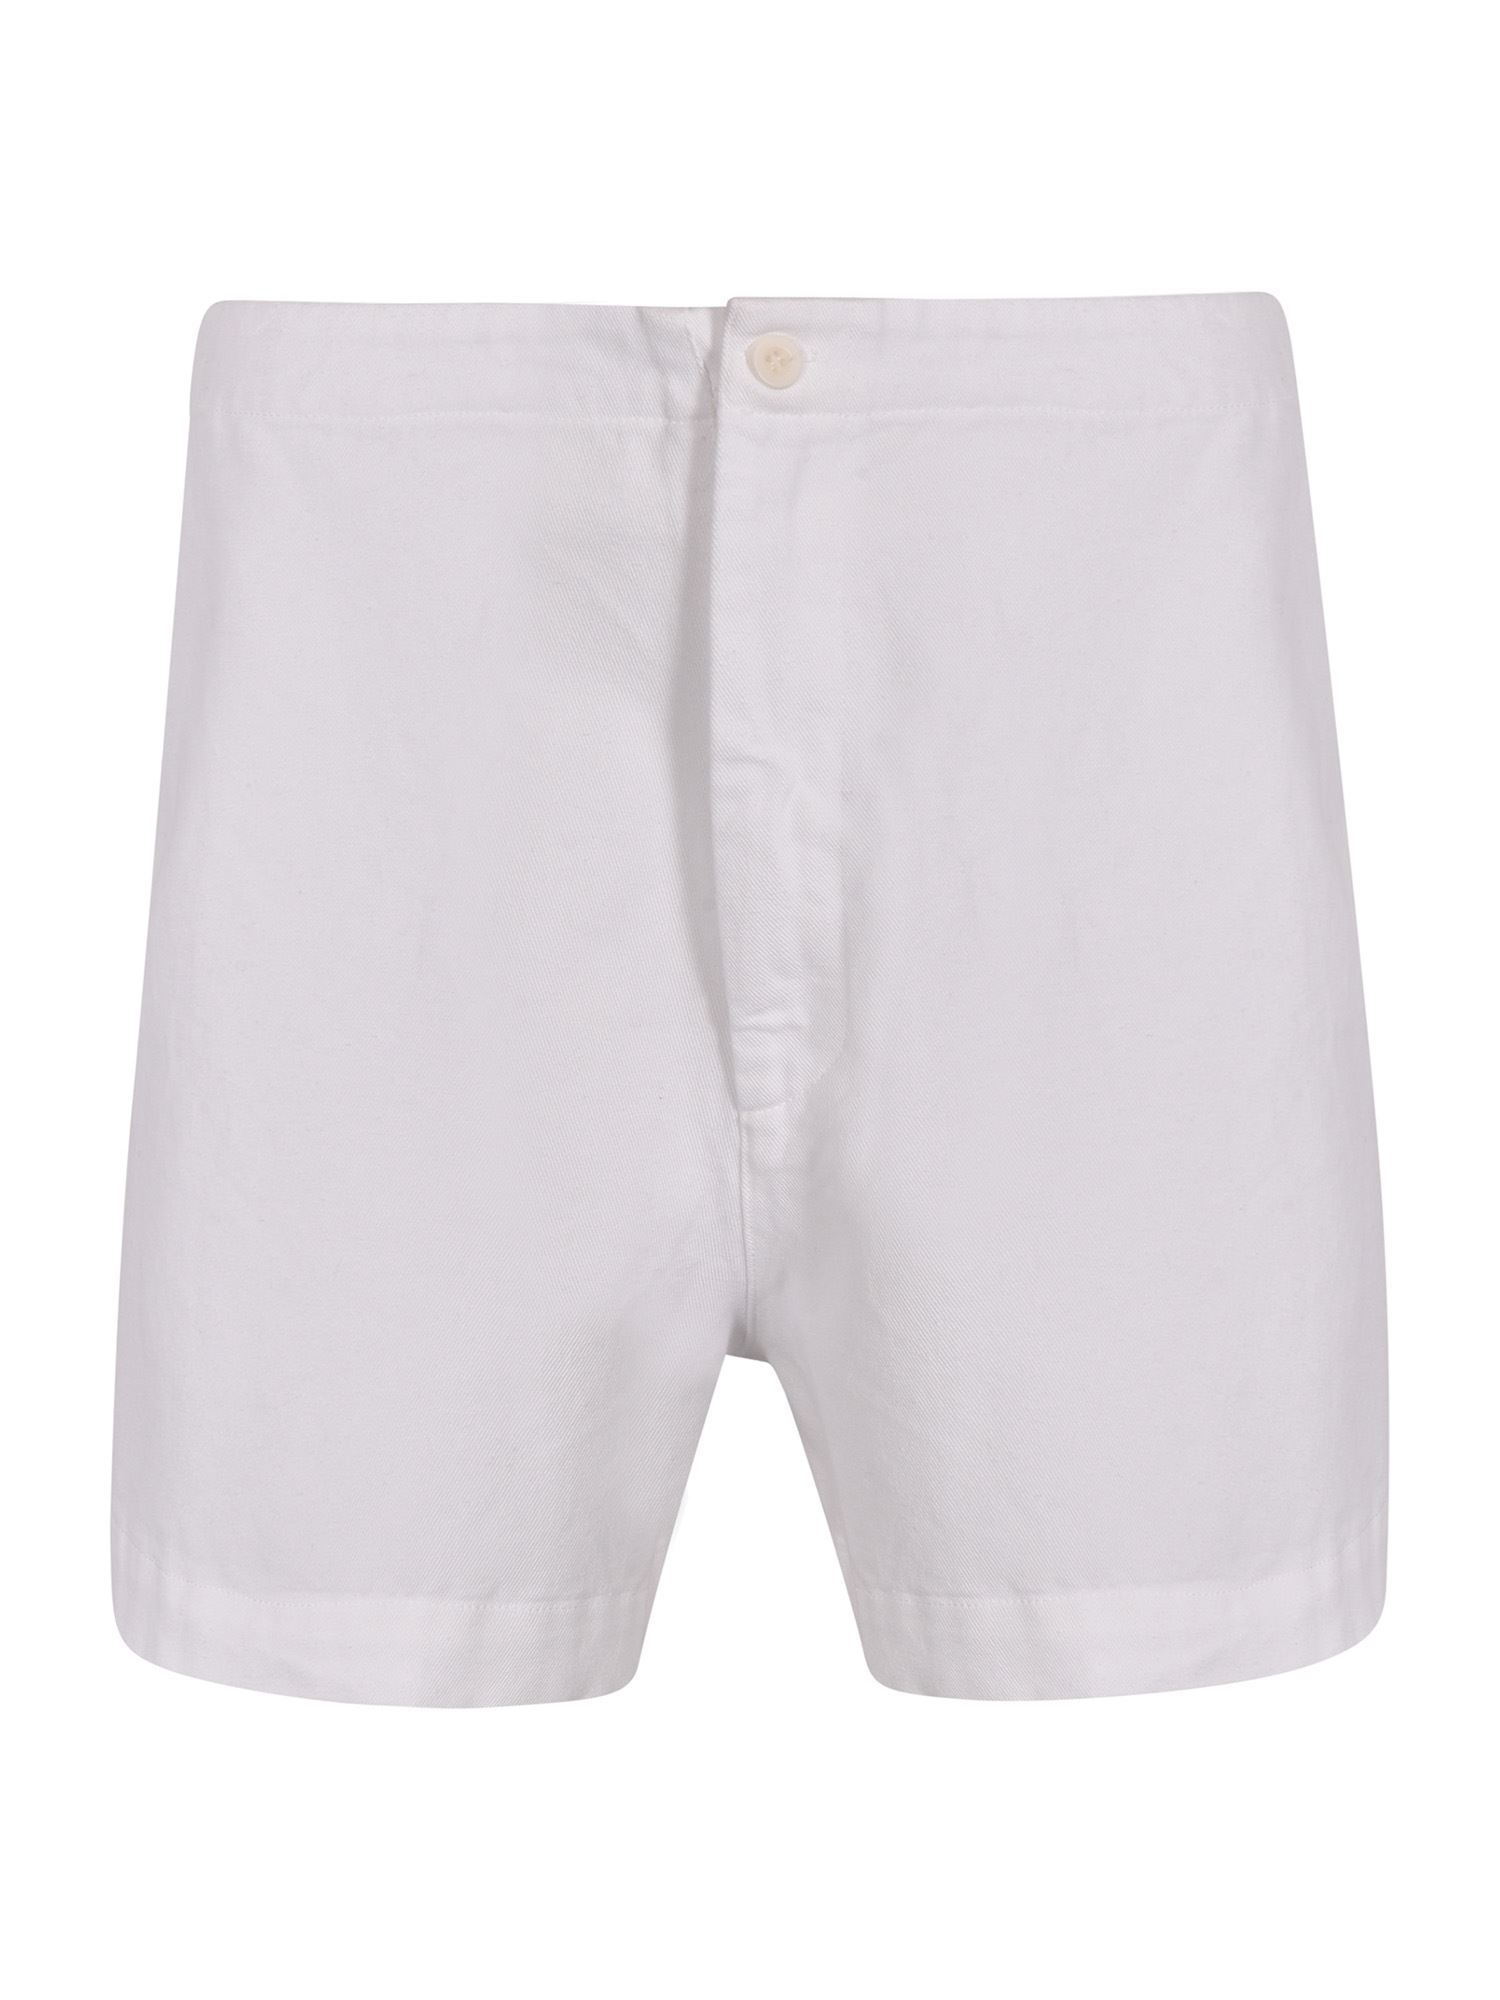 Labo.art COTTON SHORTS IN WHITE